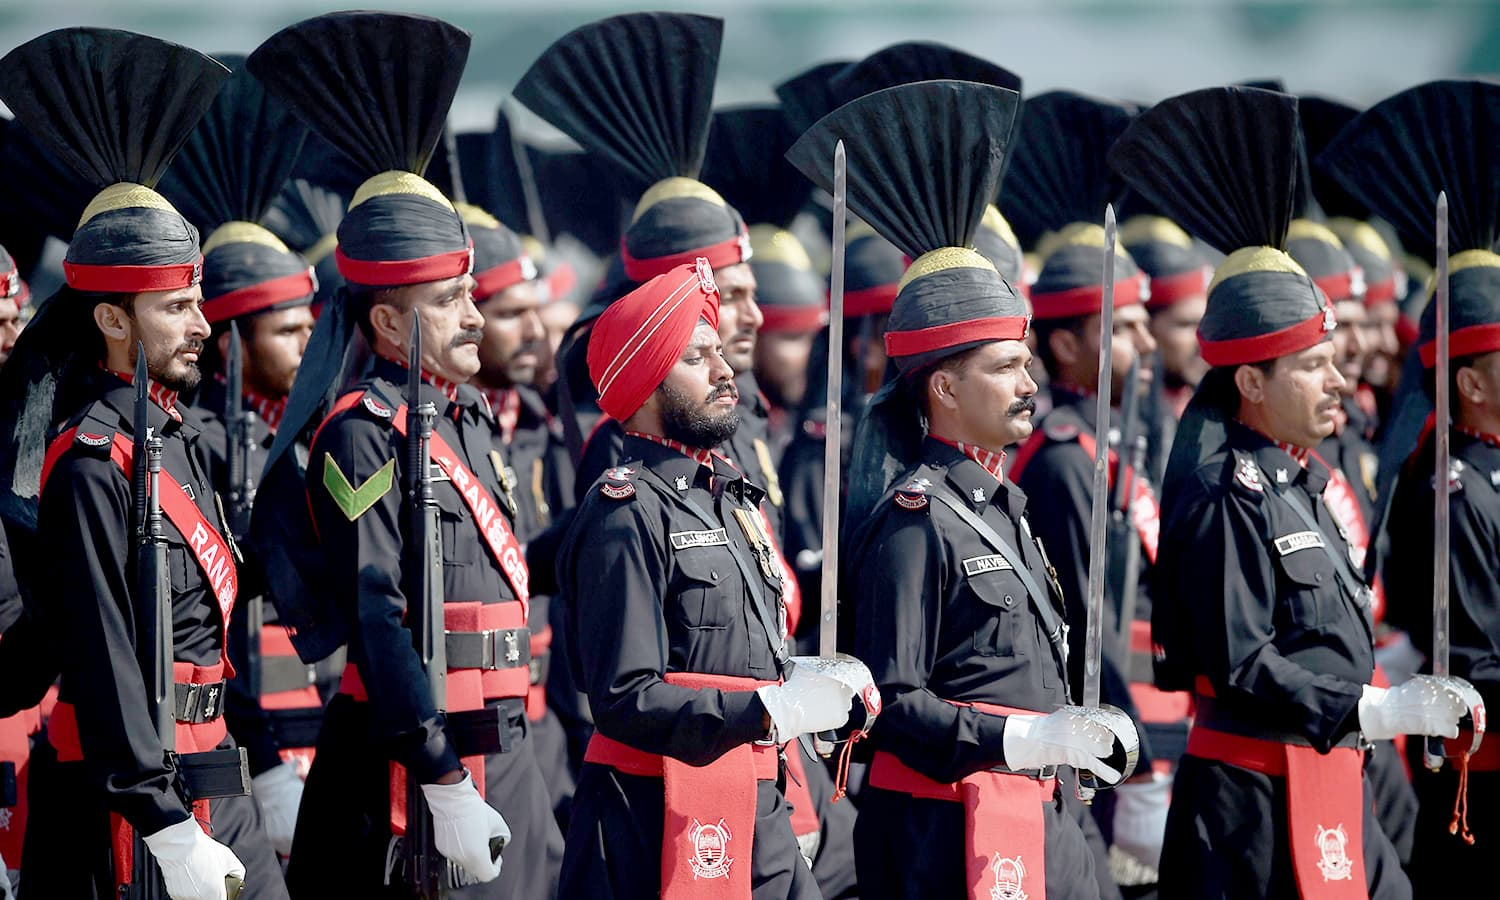 Pakistani border soldiers march past during the Pakistan Day military parade in Islamabad. ─AFP